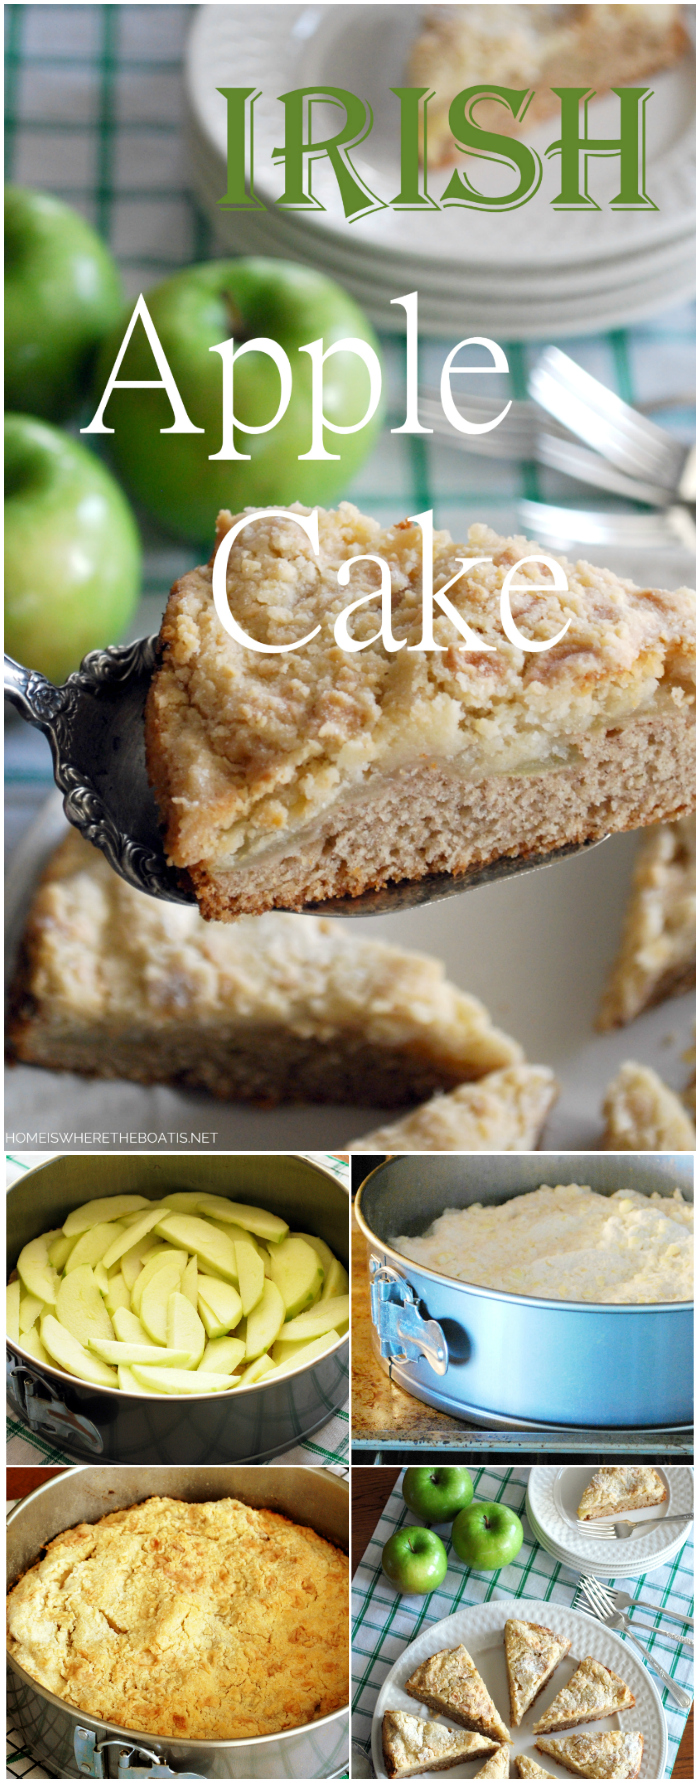 Irish Apple Cake for St. Patrick's Day | ©homeiswheretheboatis.net #StPatricksDay #recipe #cake #dessert #apple #irish